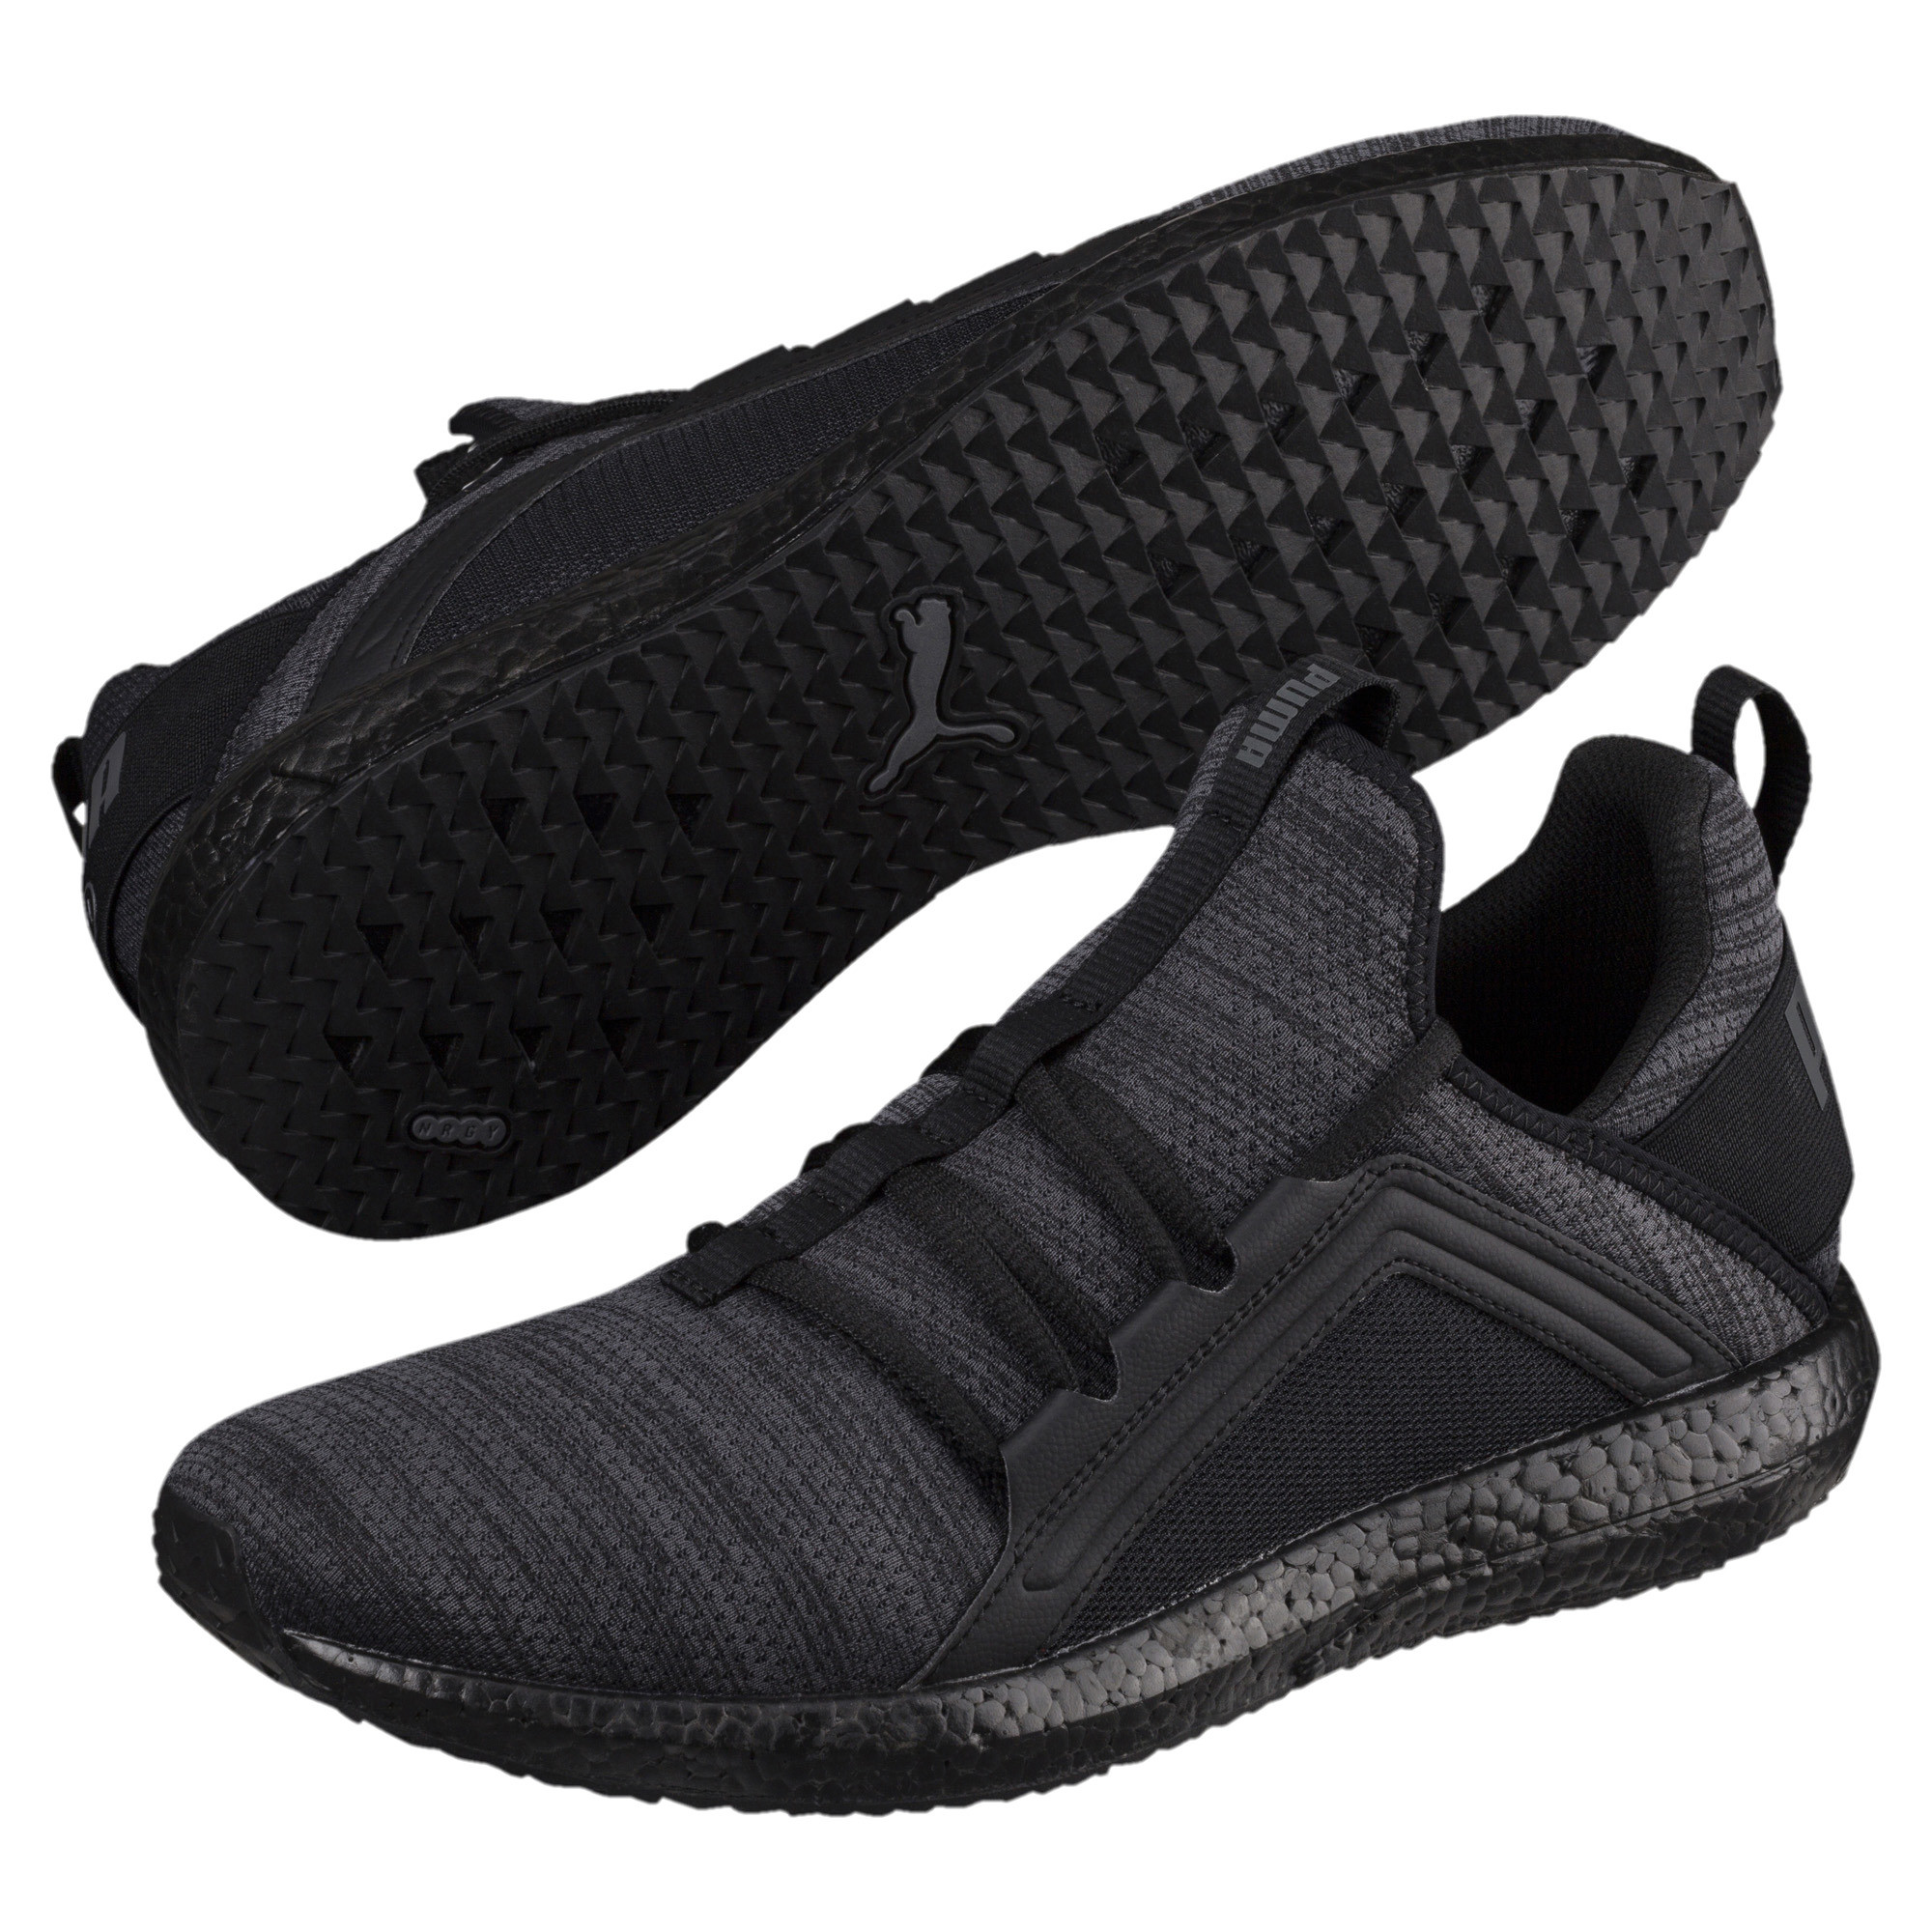 Zapatillas de running Mega Energy Heather Knit para hombre